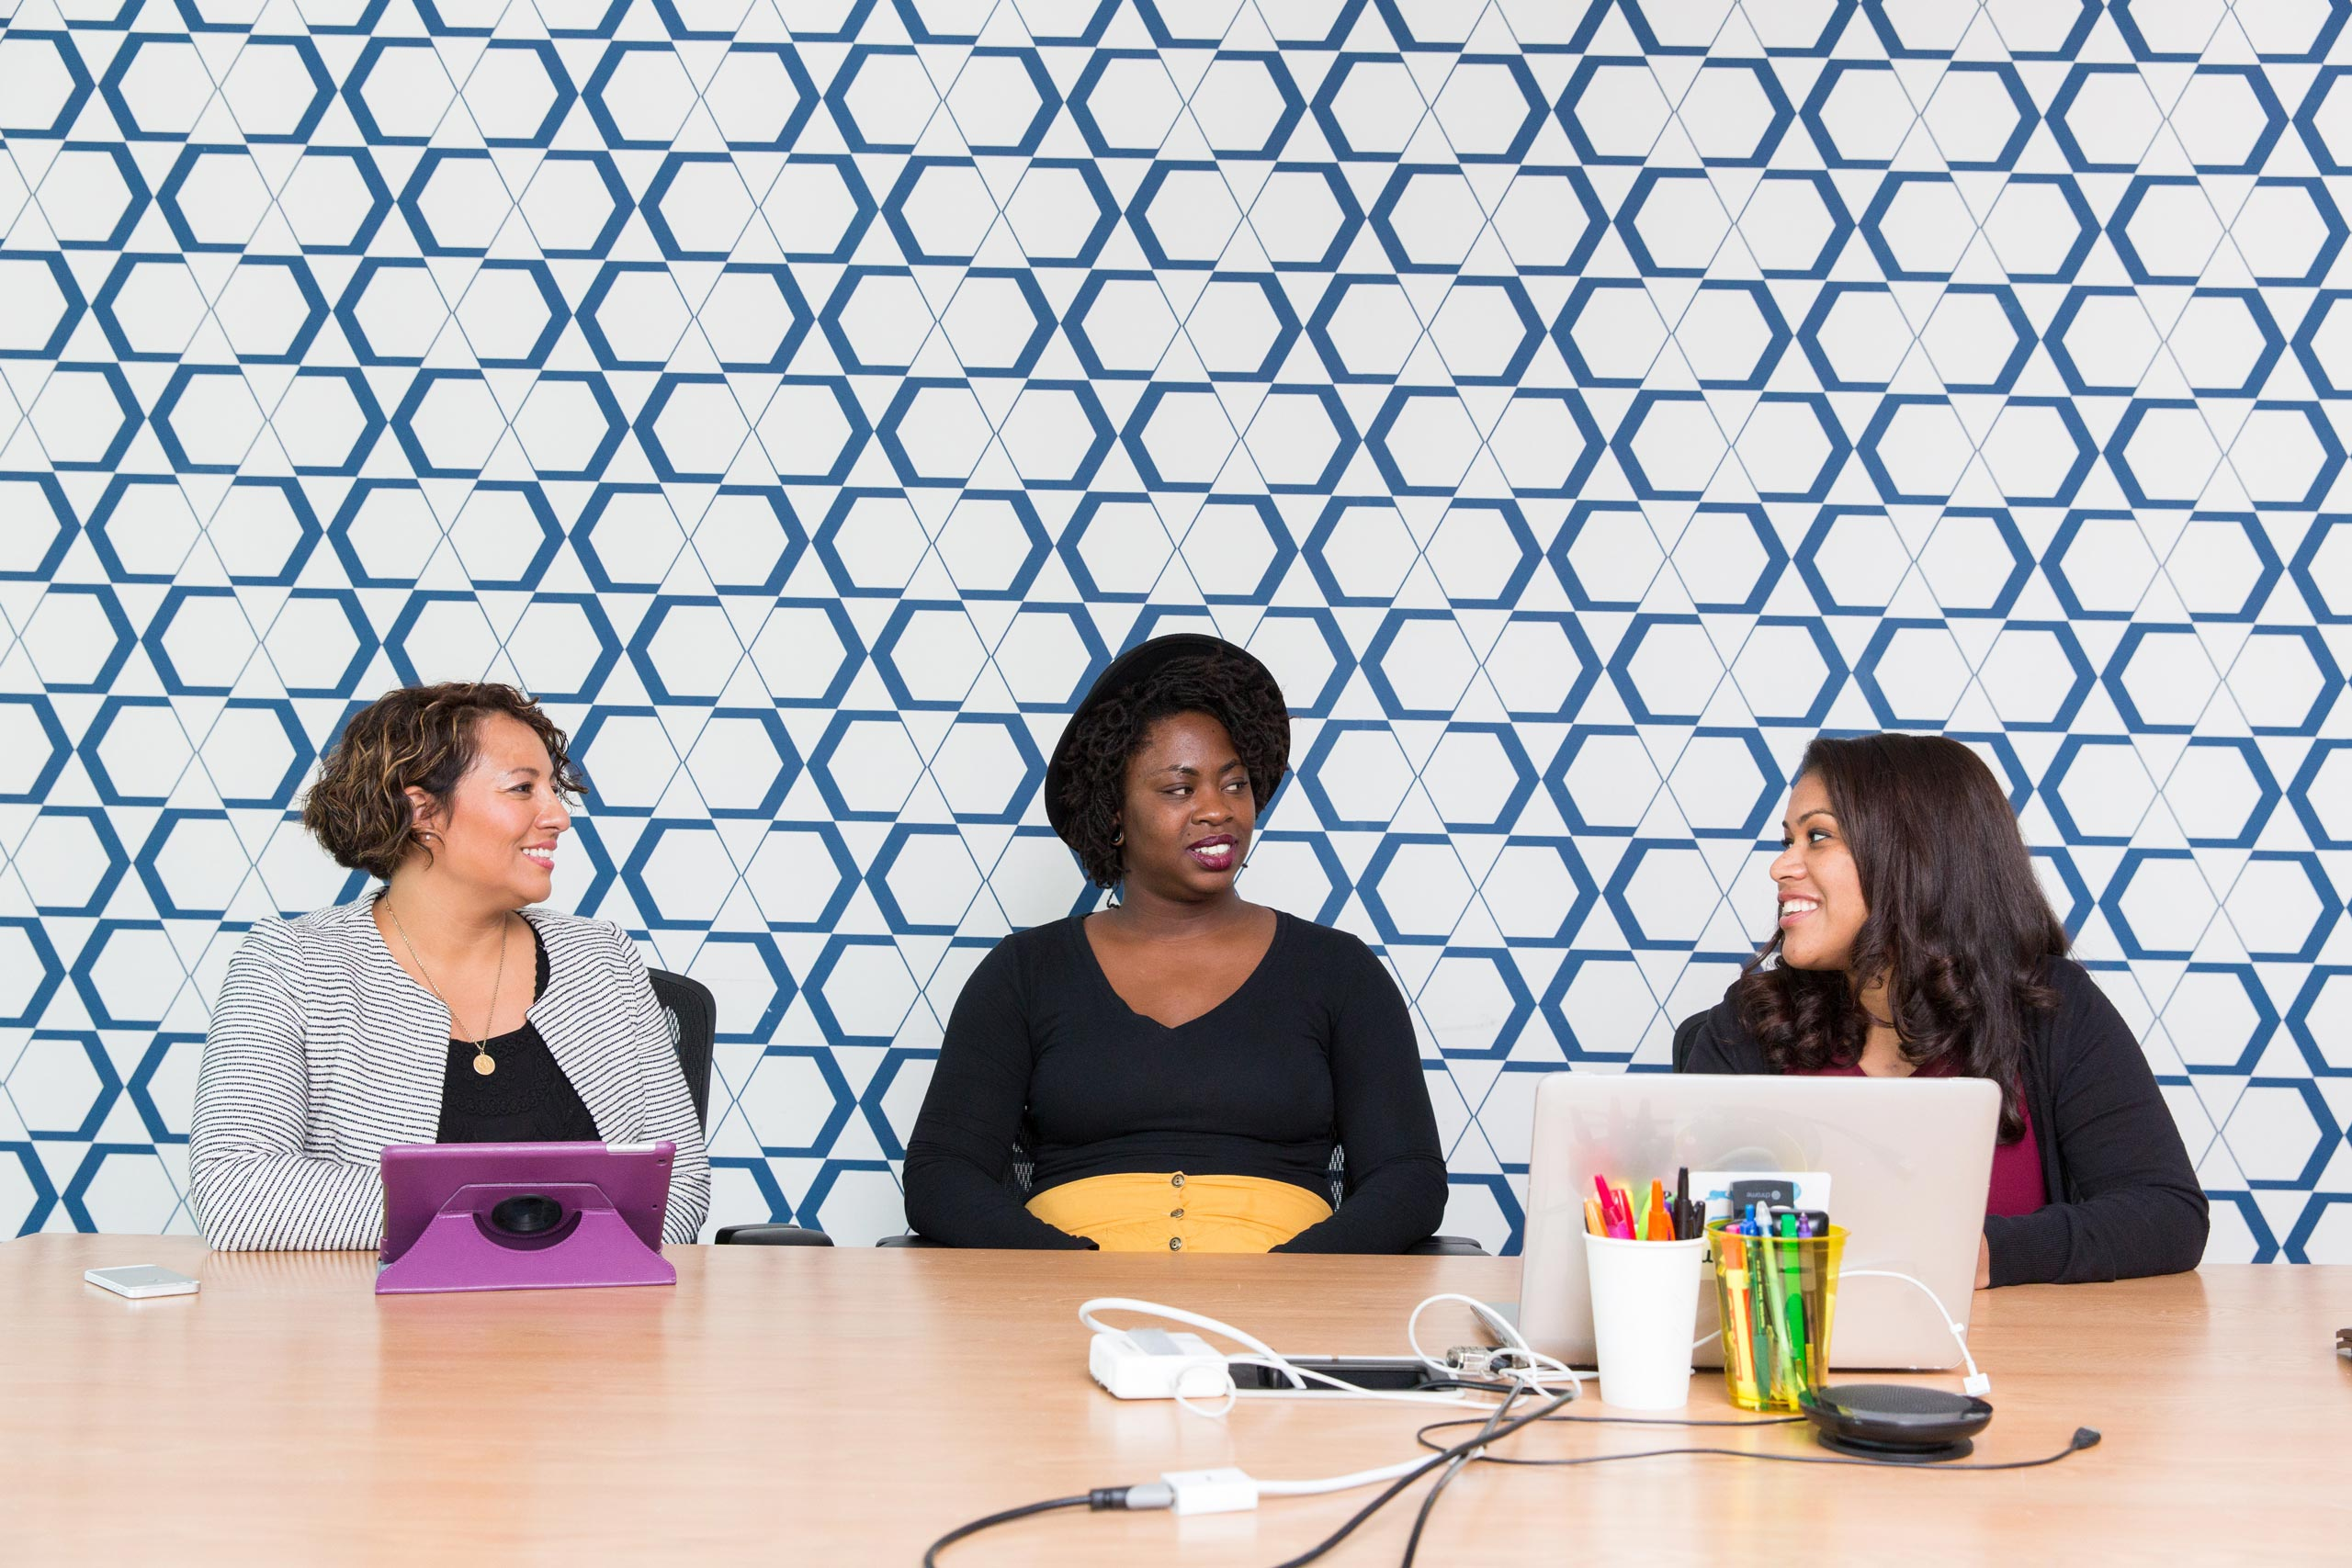 3 women consulting with each other professionally with laptops and ipads on the table in front of a blue patterned tile background